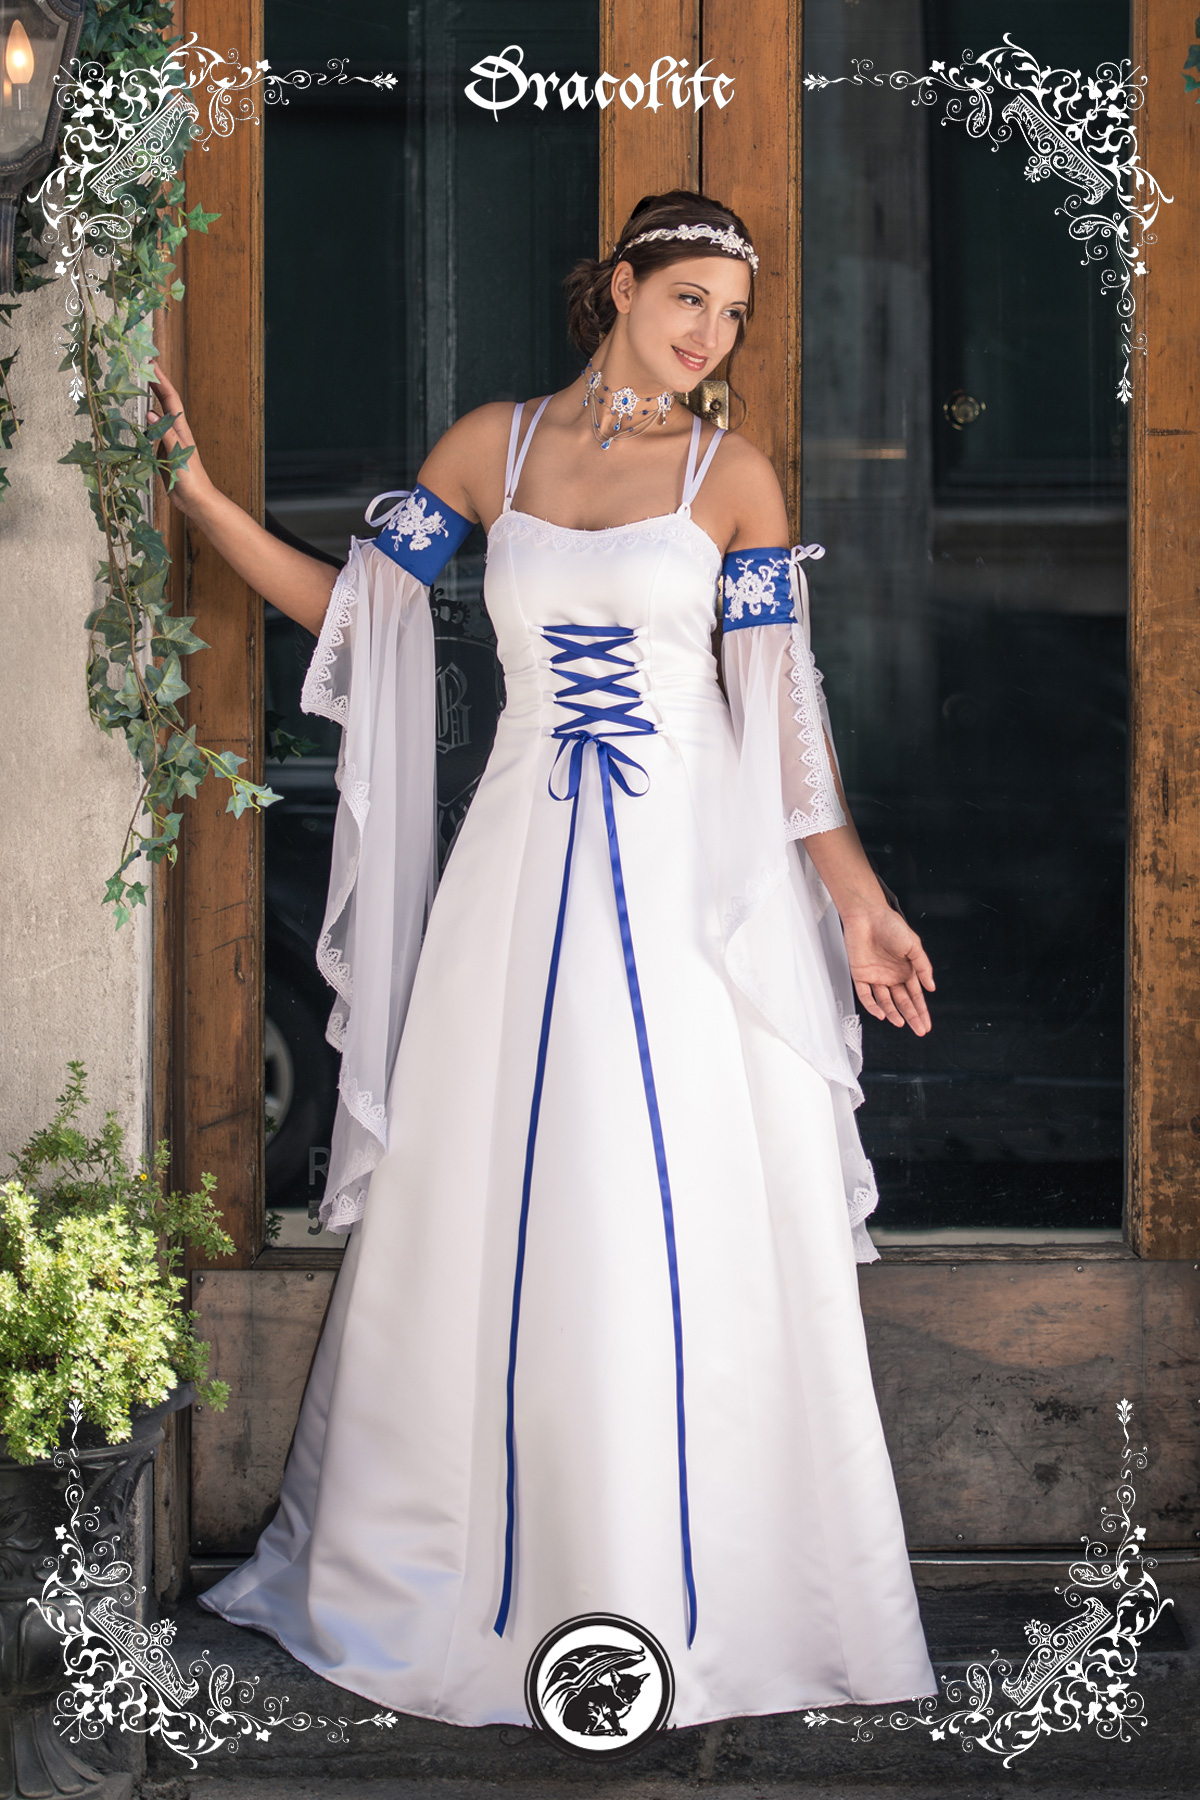 Begotten royal medieval wedding gown Viking dress, Gowns